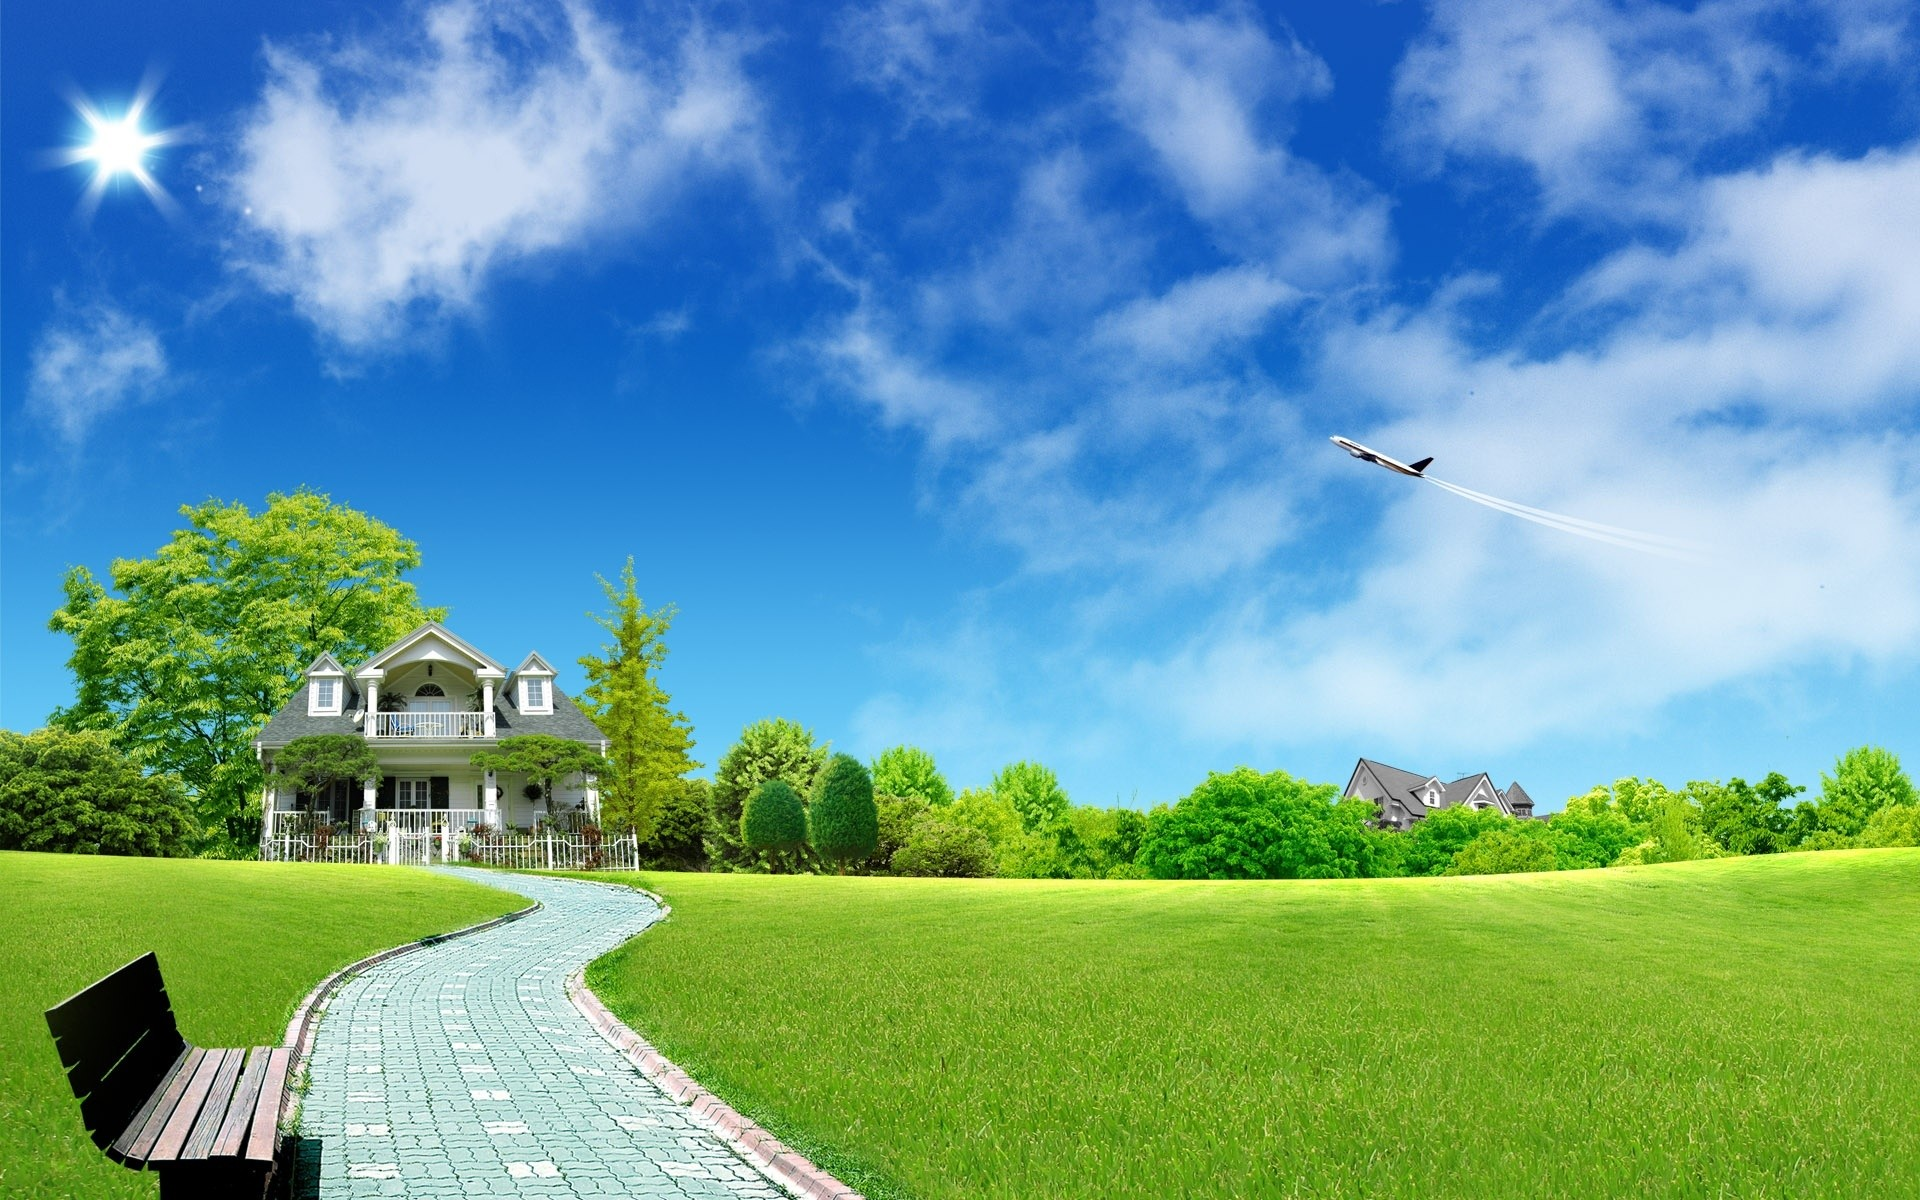 1920x1200 Residential. Hd Wallpapers For LaptopFree Hd WallpapersDesktop BackgroundsHd  Nature ...